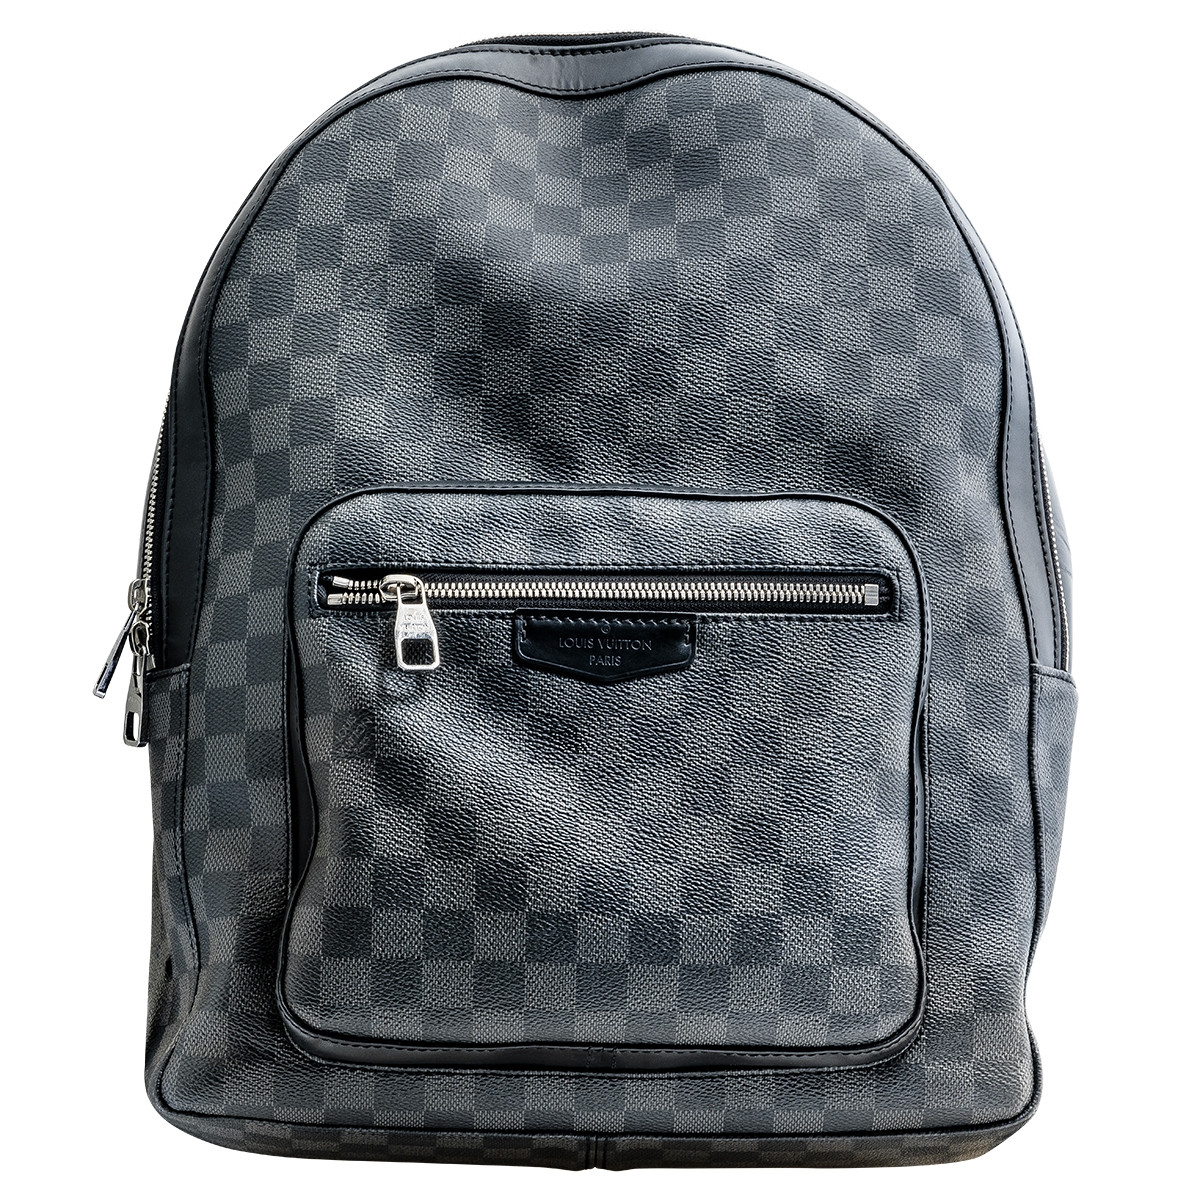 Vintage Louis Vuitton Damier Josh Backpack